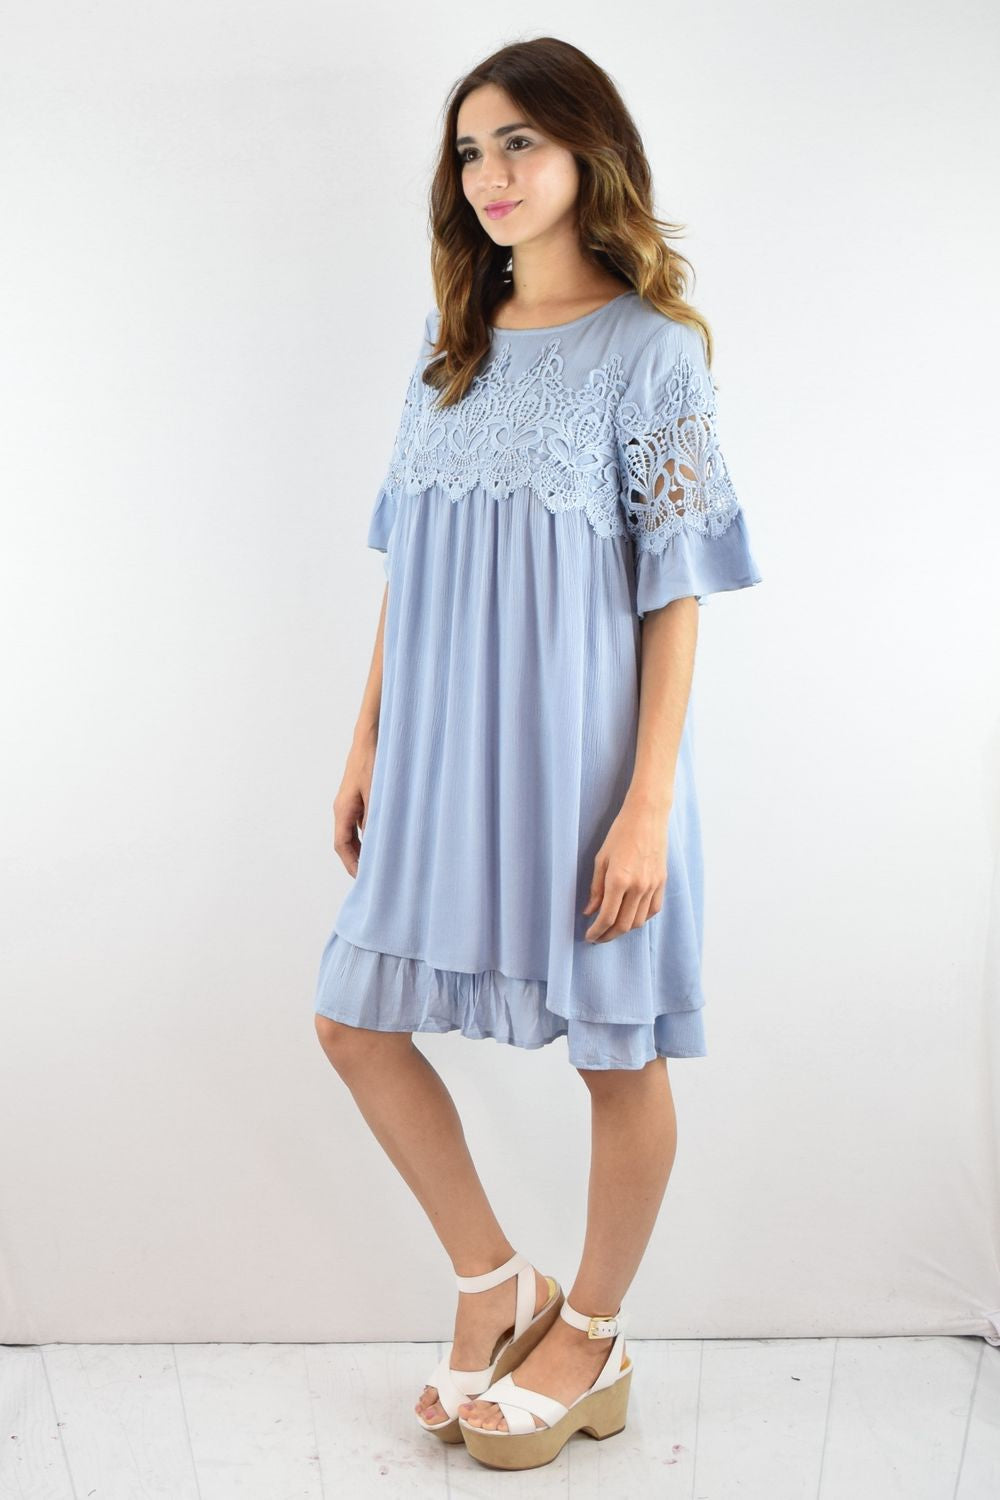 Pastel Blue Ruffle Mini Dress with Crochet Panel